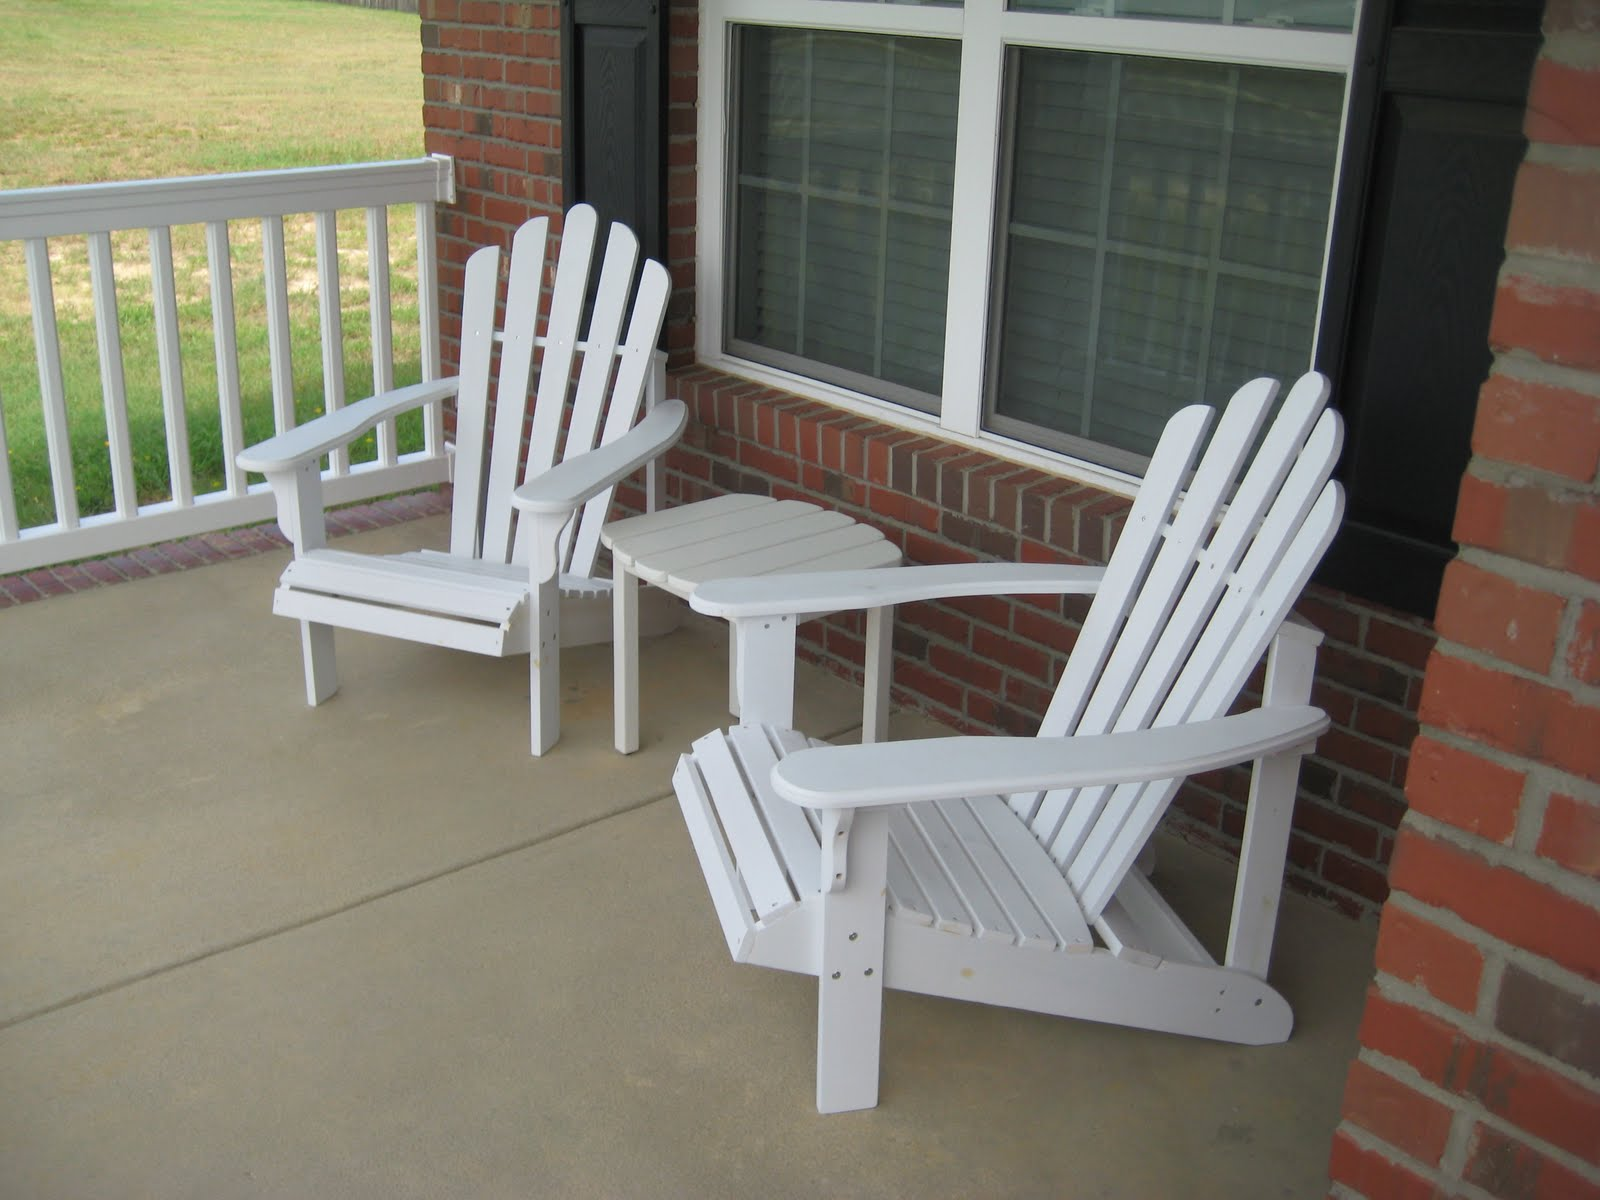 family of 3 new front porch furniture. Black Bedroom Furniture Sets. Home Design Ideas